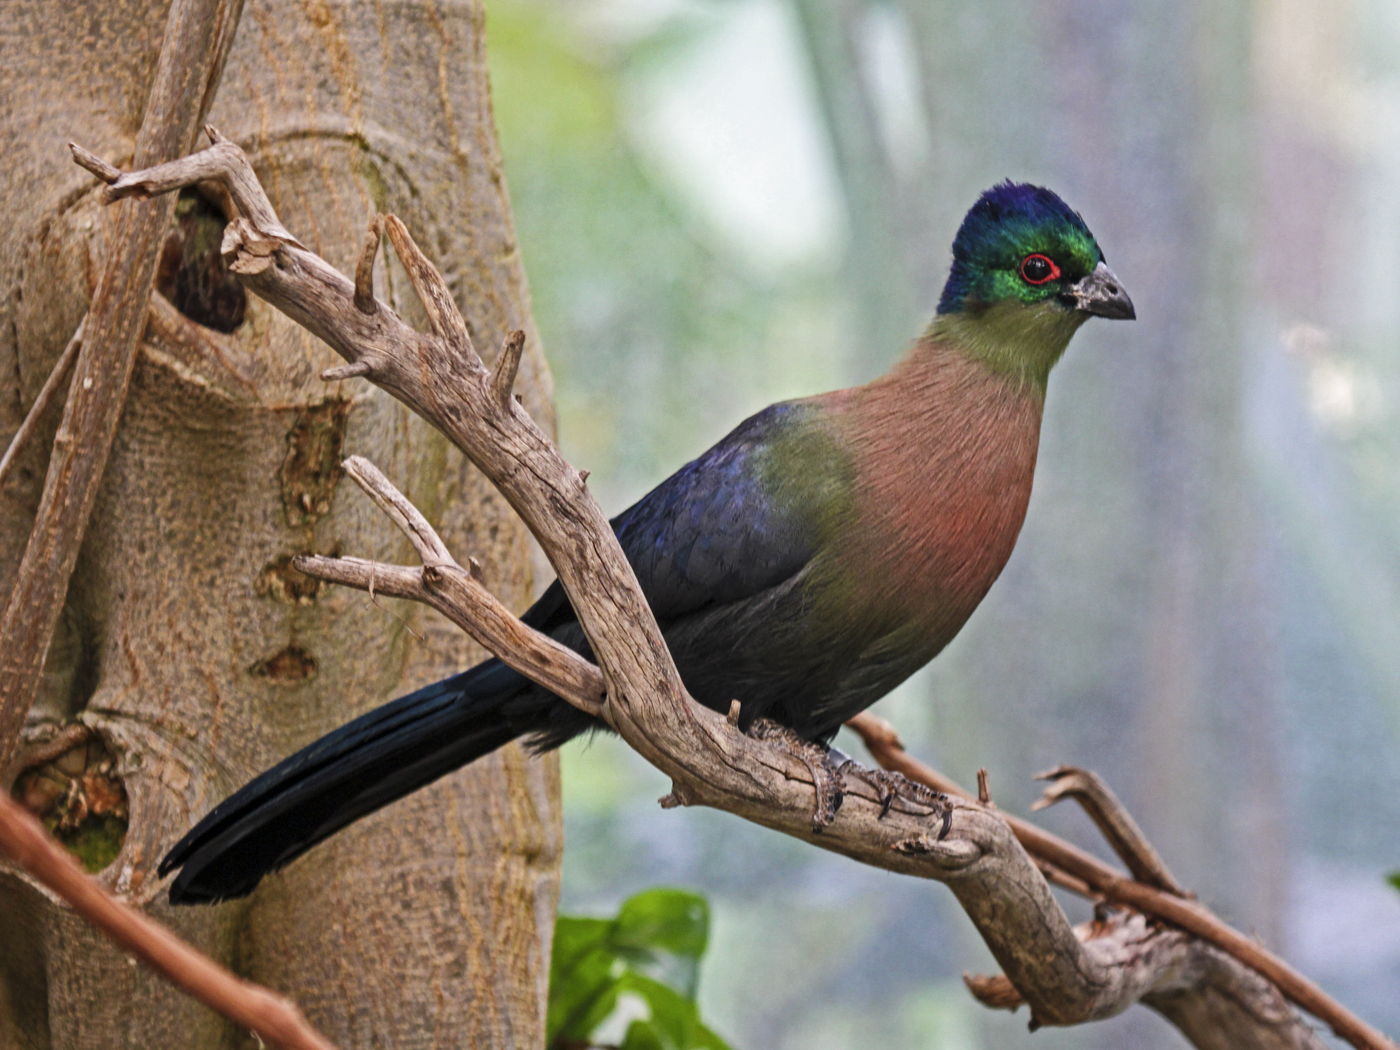 Purple-crested_Turaco_Richard Daniels